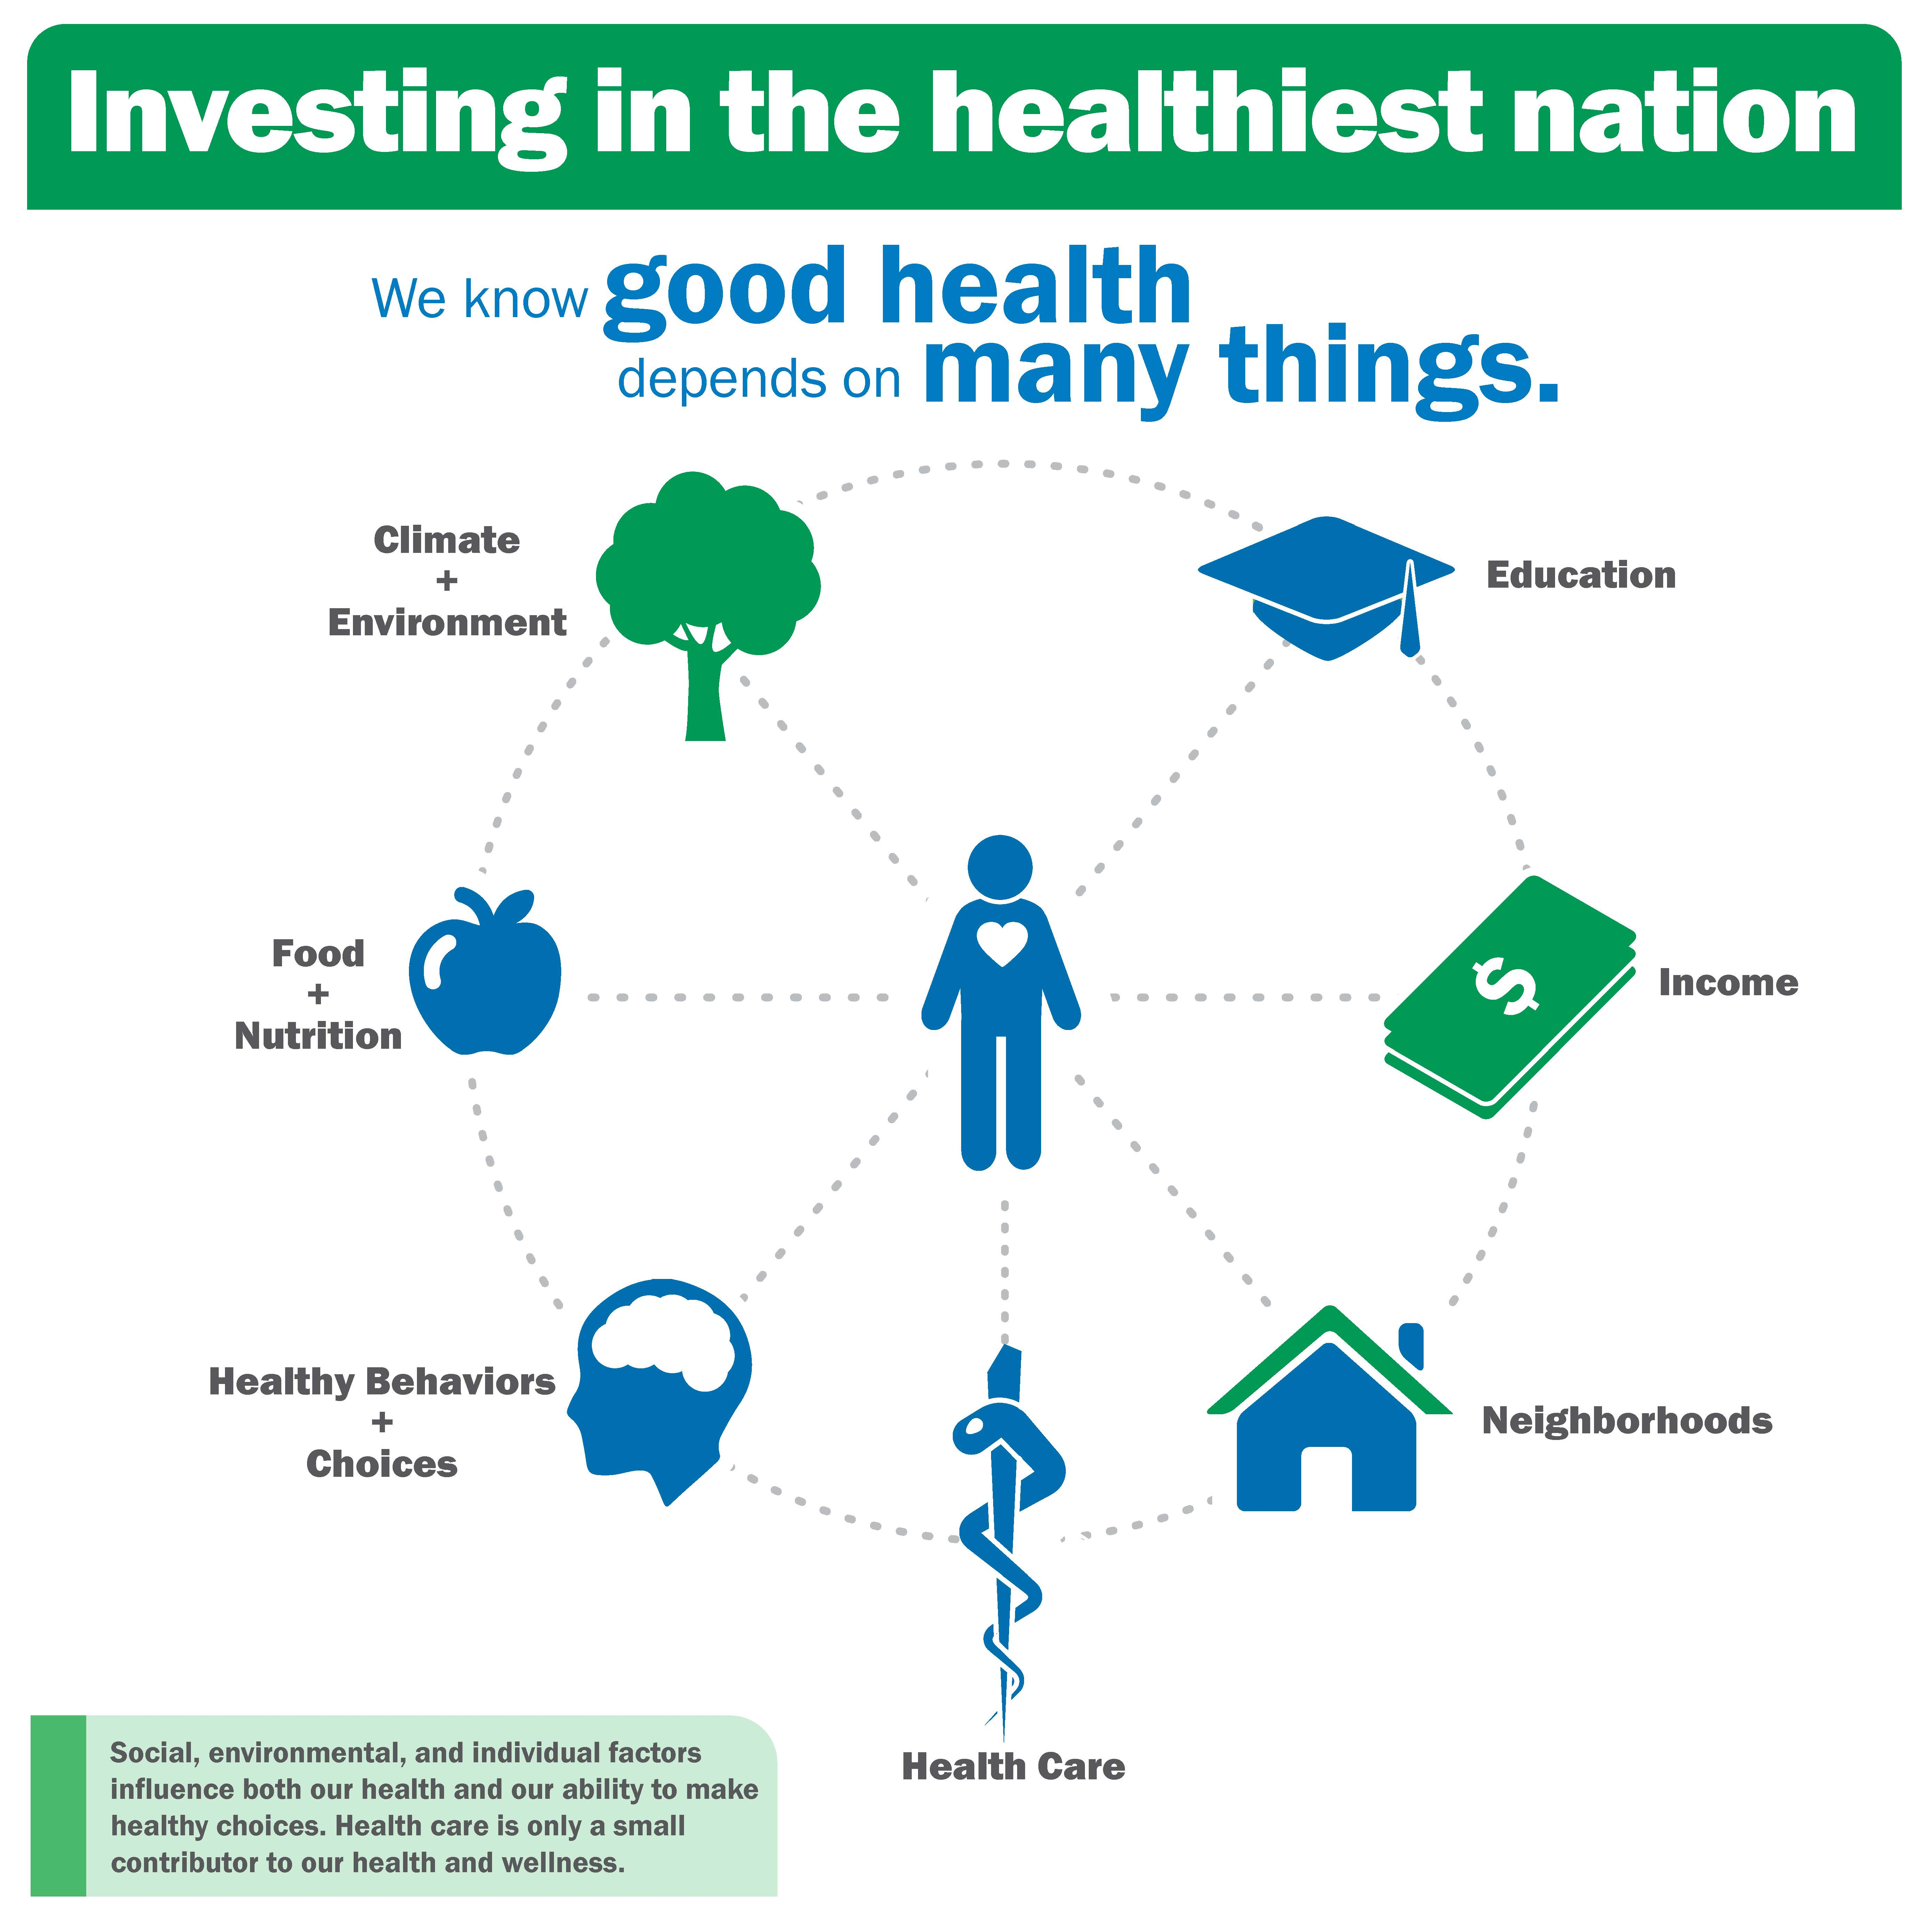 Investing in the healthiest nation public health infographic